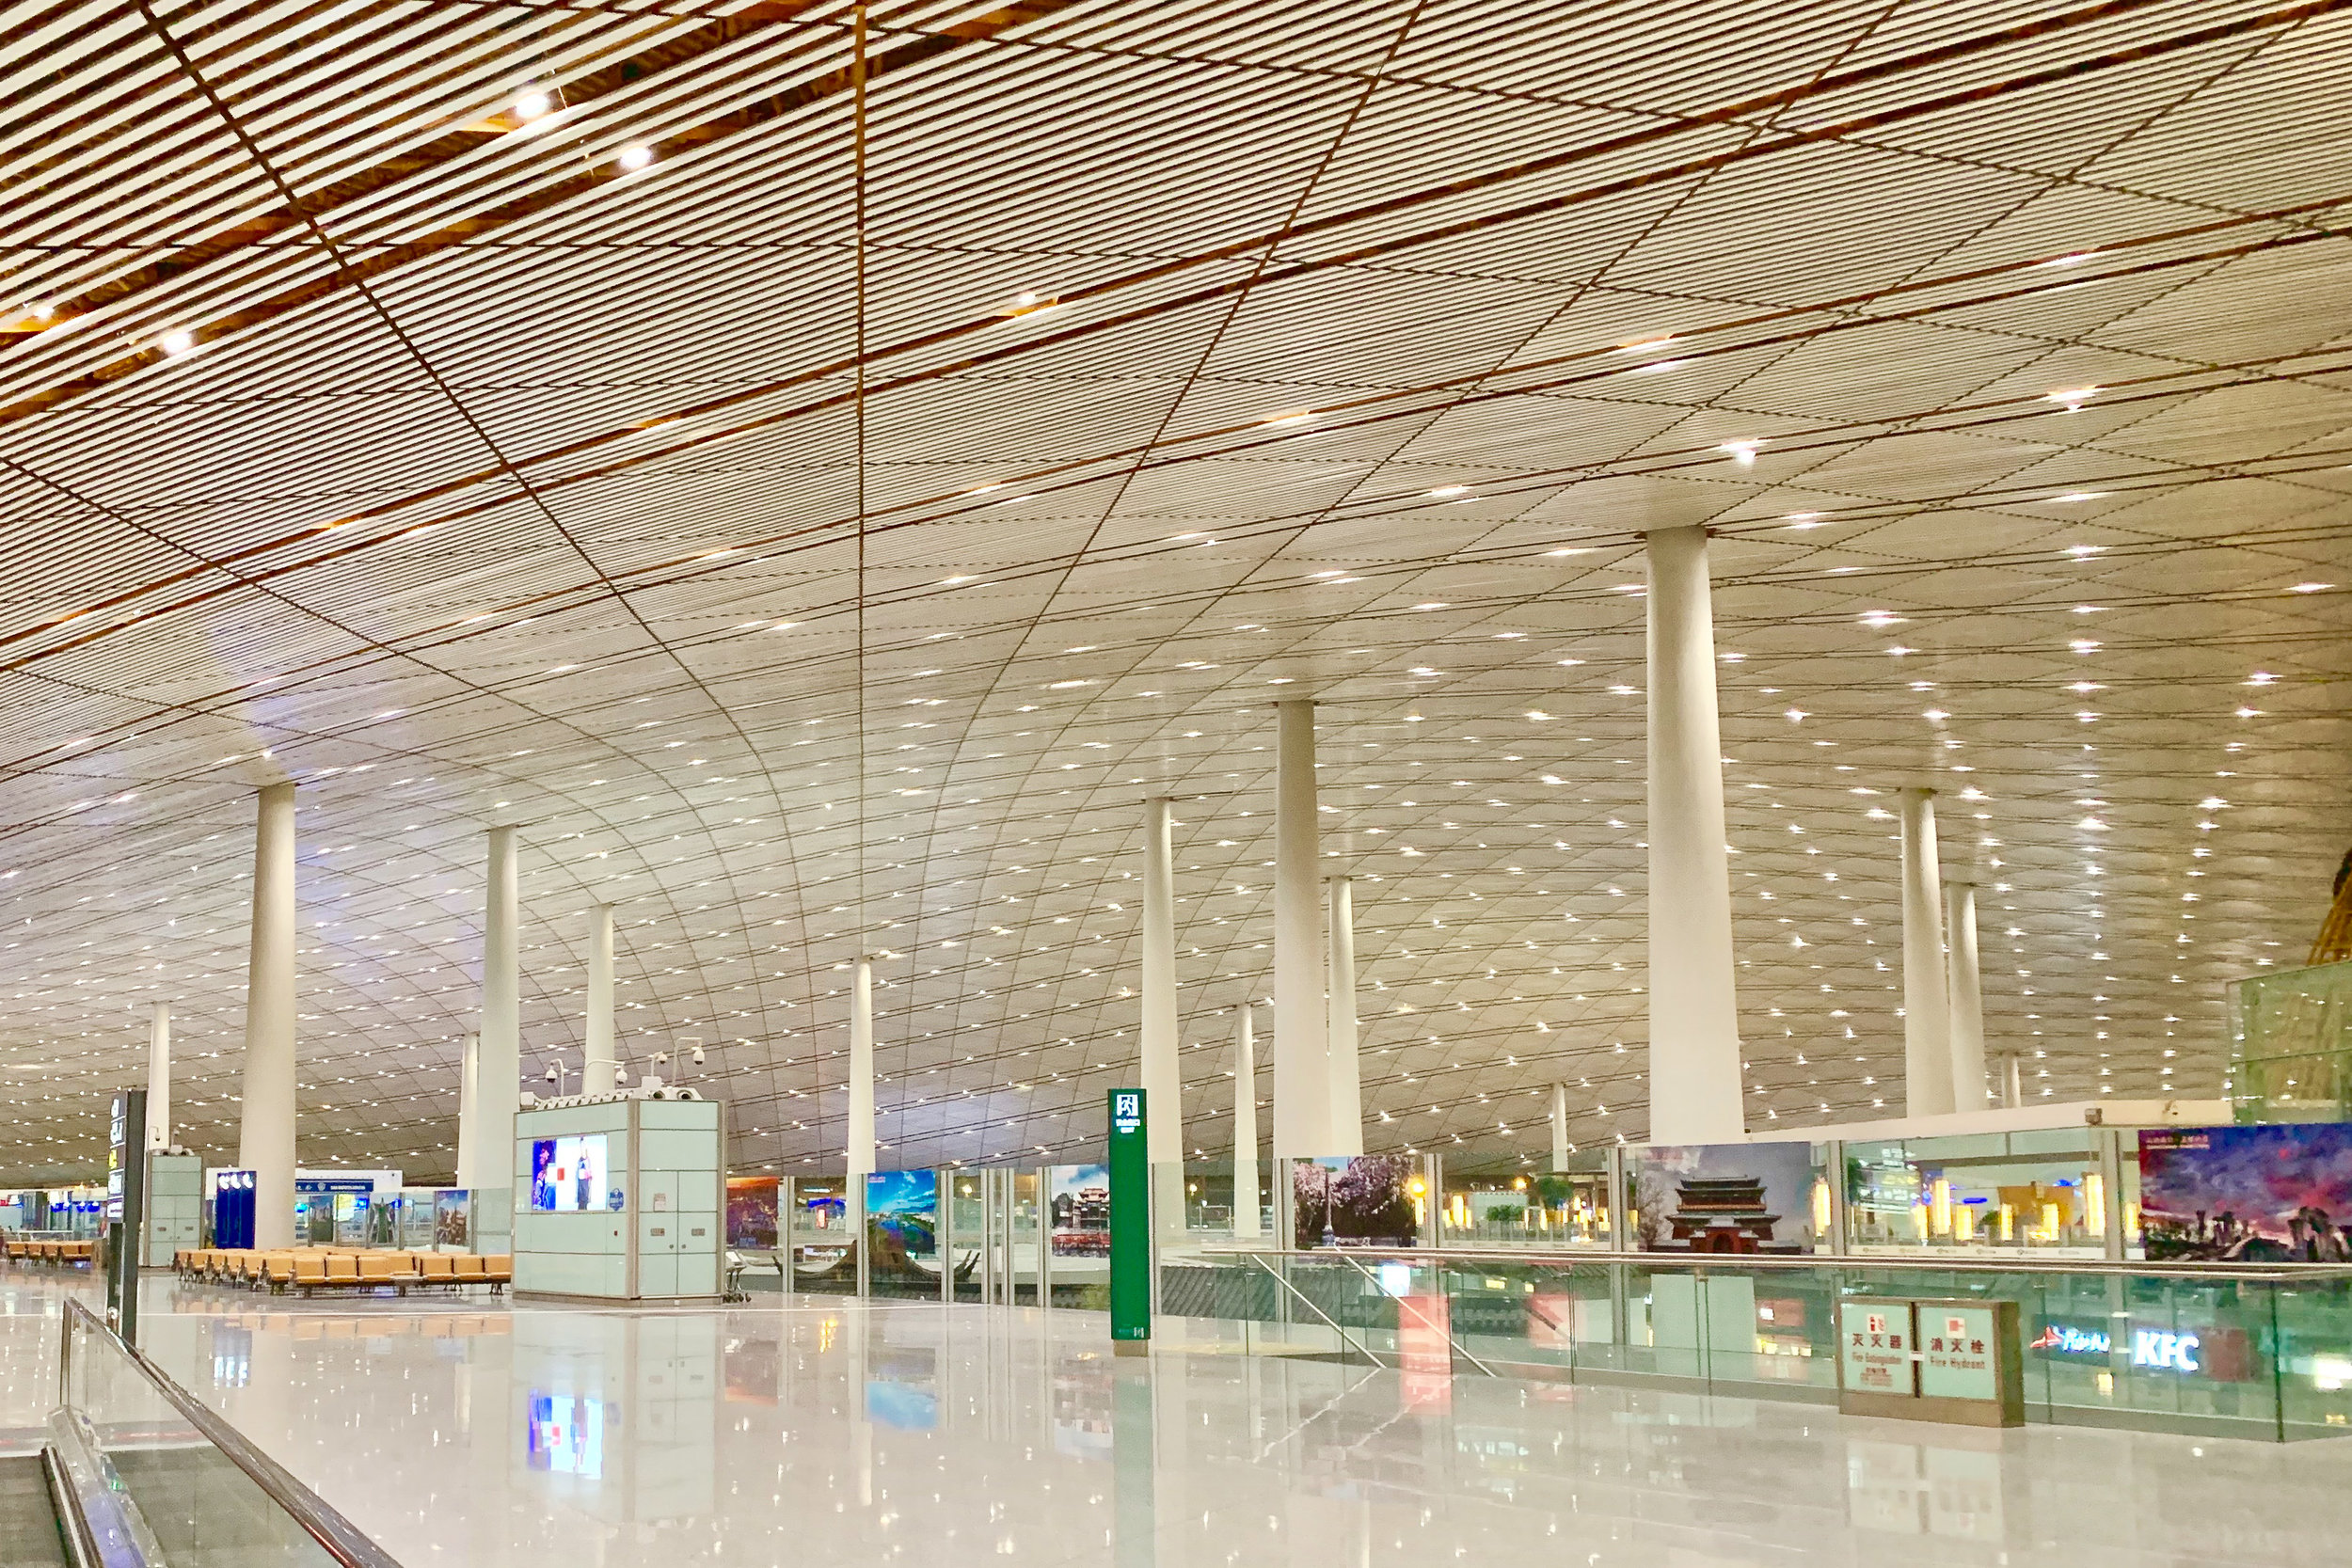 Beijing's PEK Airport International Arrivals Terminal